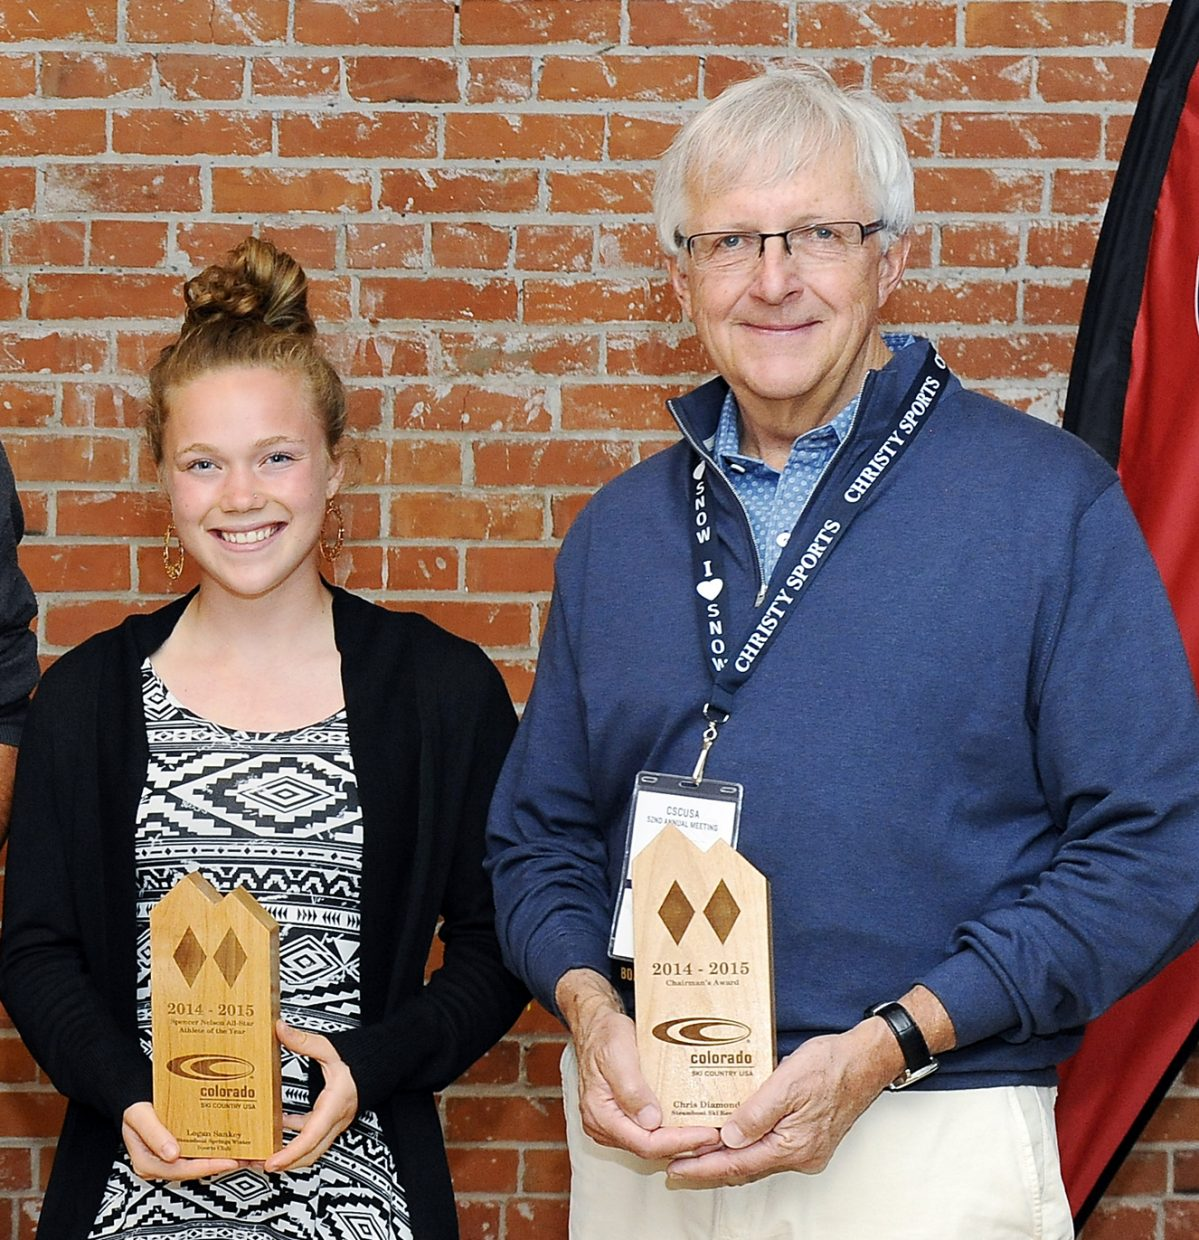 Steamboat Springs Winter Sports Club ski jumper Logan Sankey, left, received the Spencer Nelson All-Star Athlete of the Year award, and retiring Steamboat Ski & Resort Corp. President and Chief Operating Officer Chris Diamond received a Chairman's Award June 12 at the annual meeting of Colorado Ski Country USA in Boulder. Not present was Steamboat ski instructor Trish O'Connell, who was named ski instructor of the year.